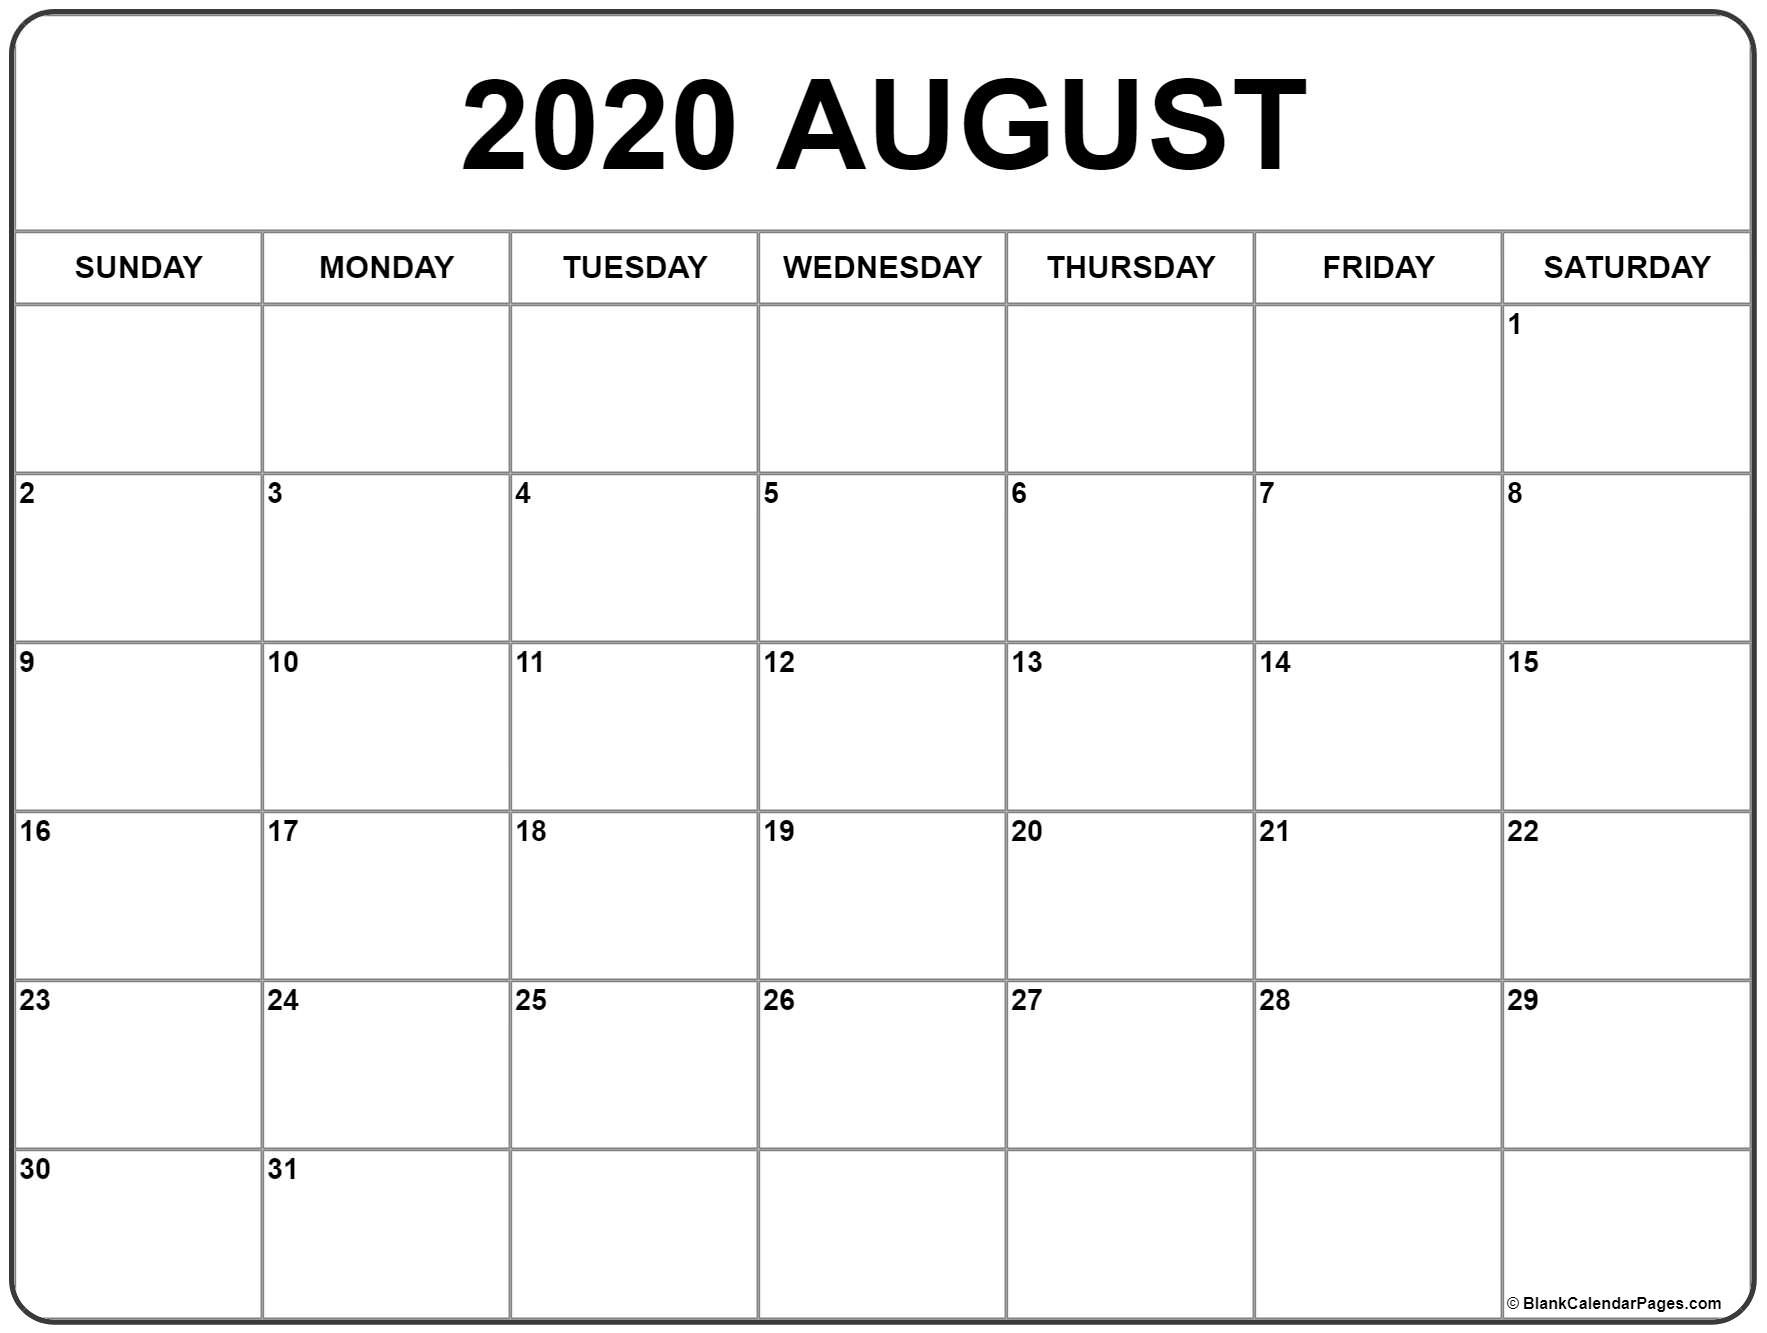 August 2020 Calendar | Free Printable Monthly Calendars  Blank Calendar For August 2020 Printable